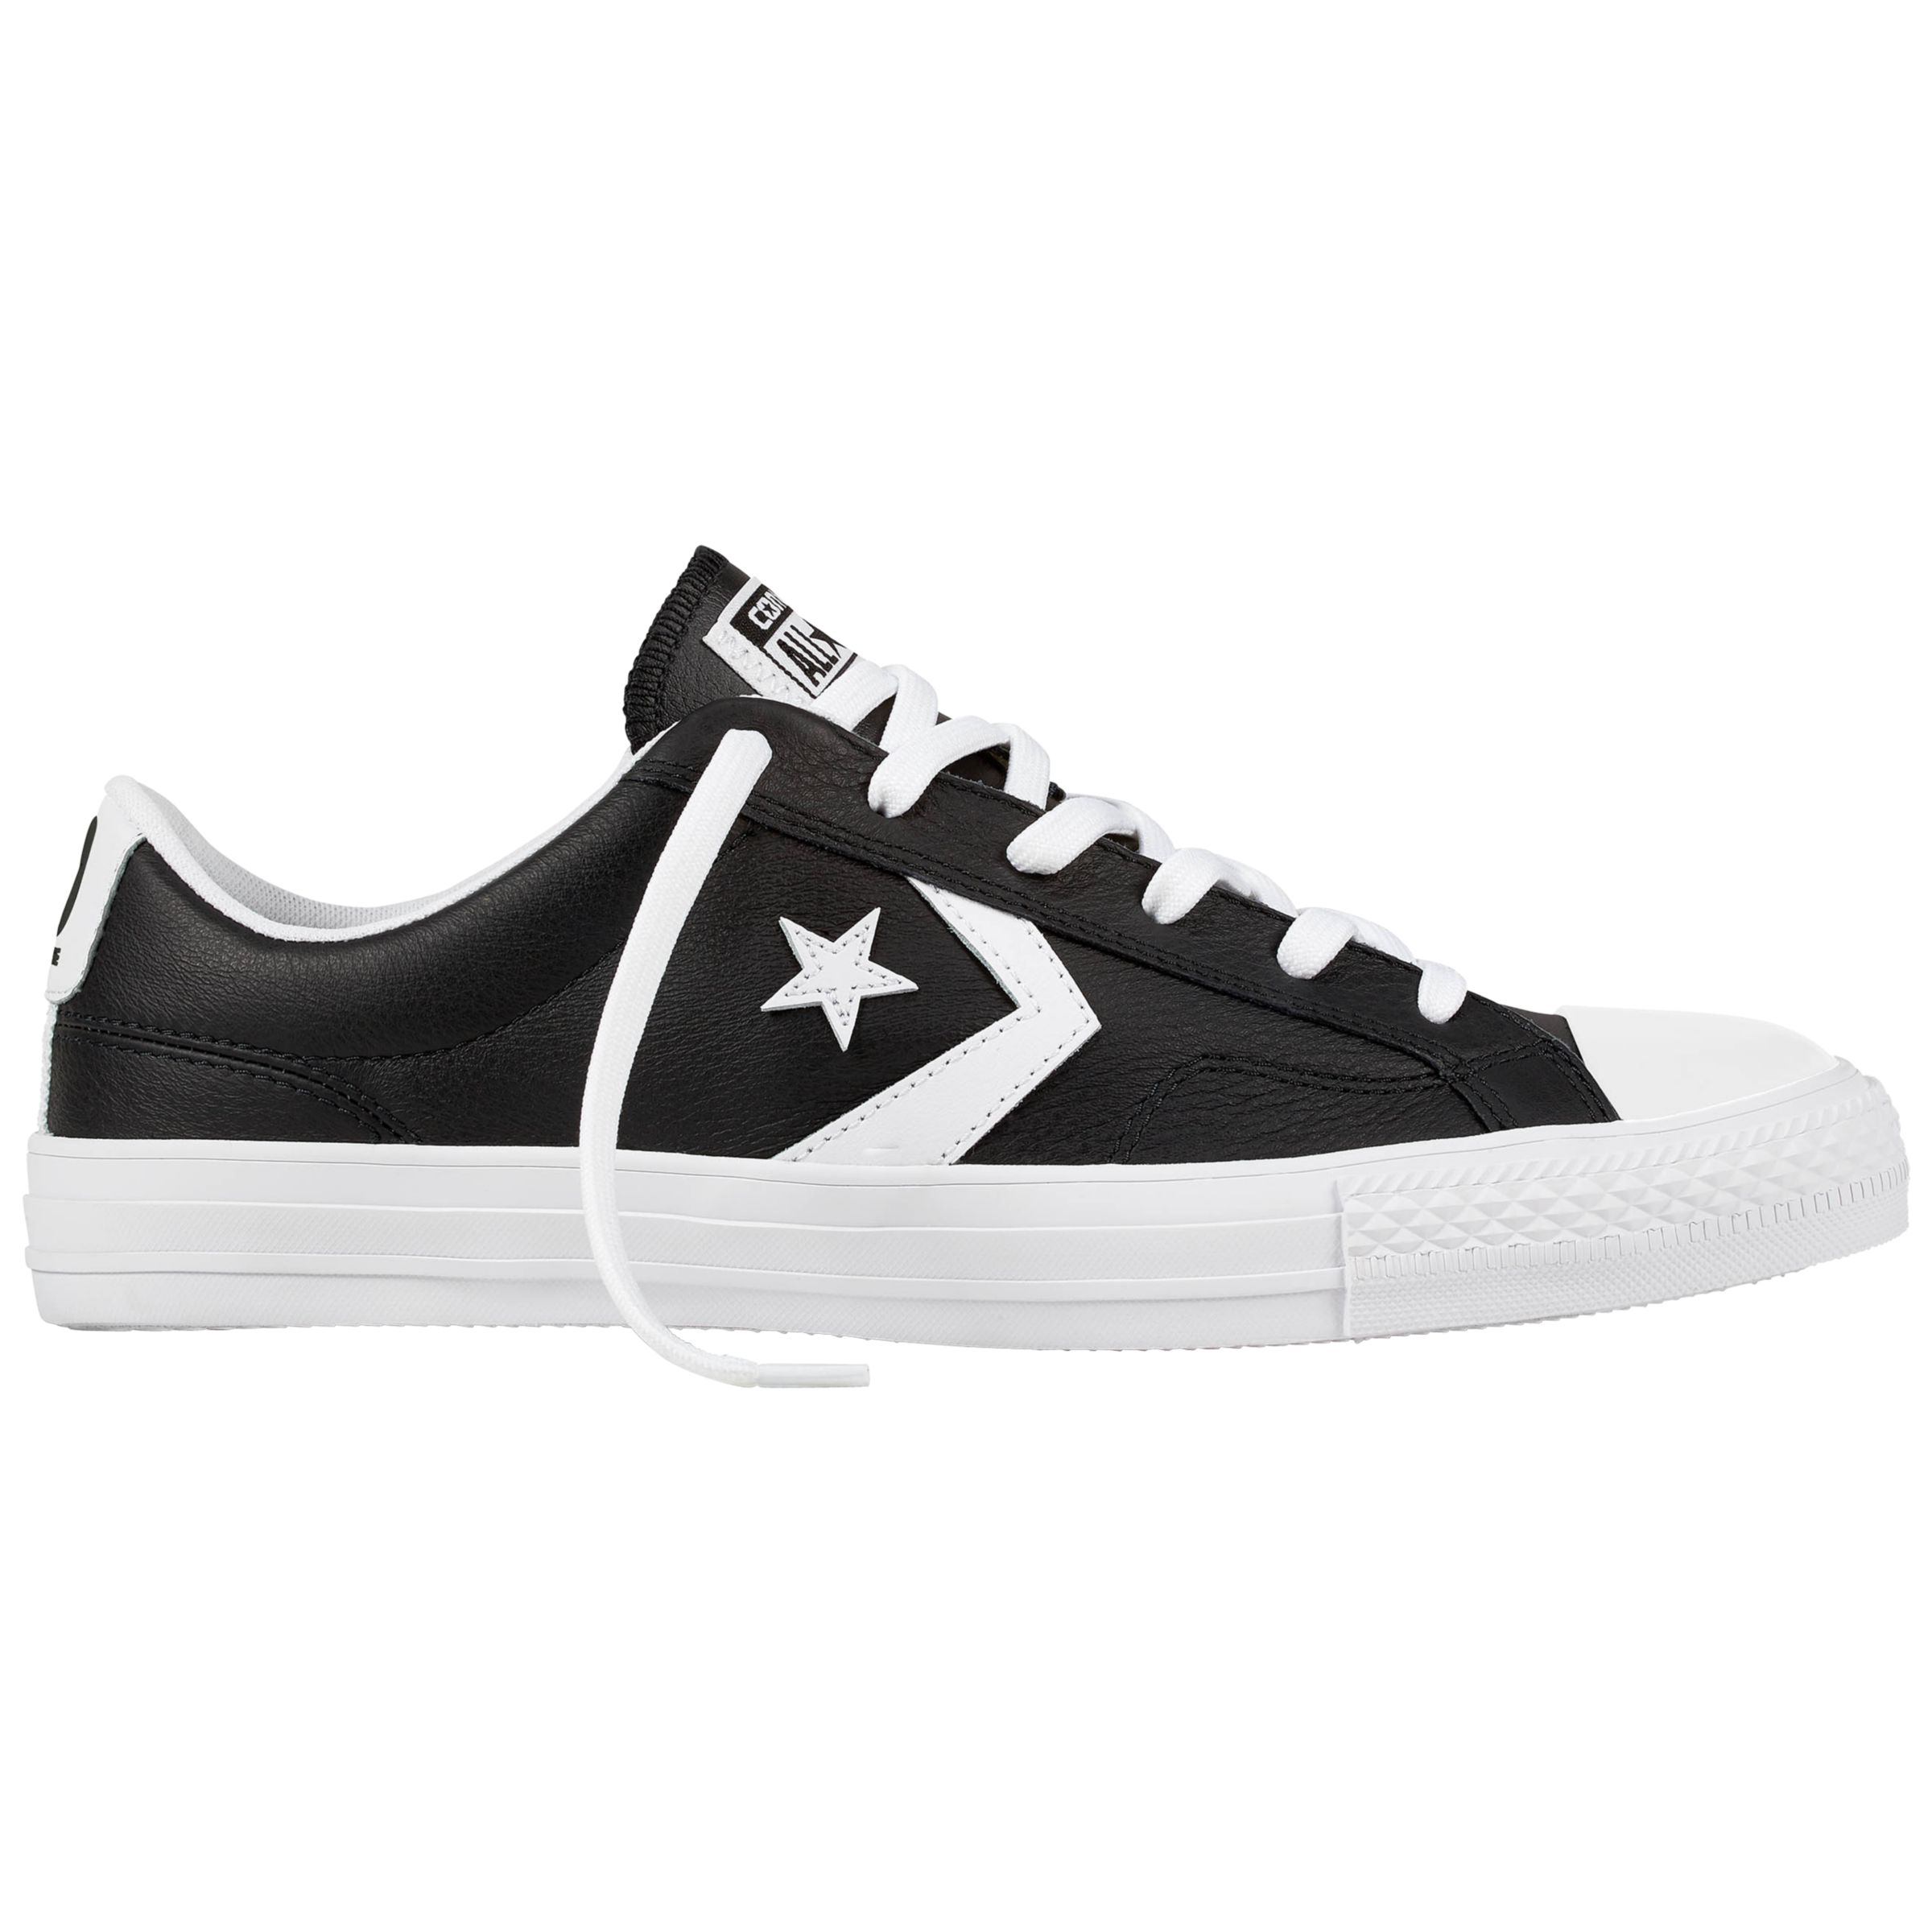 converse star player leather Shop Clothing & Shoes Online